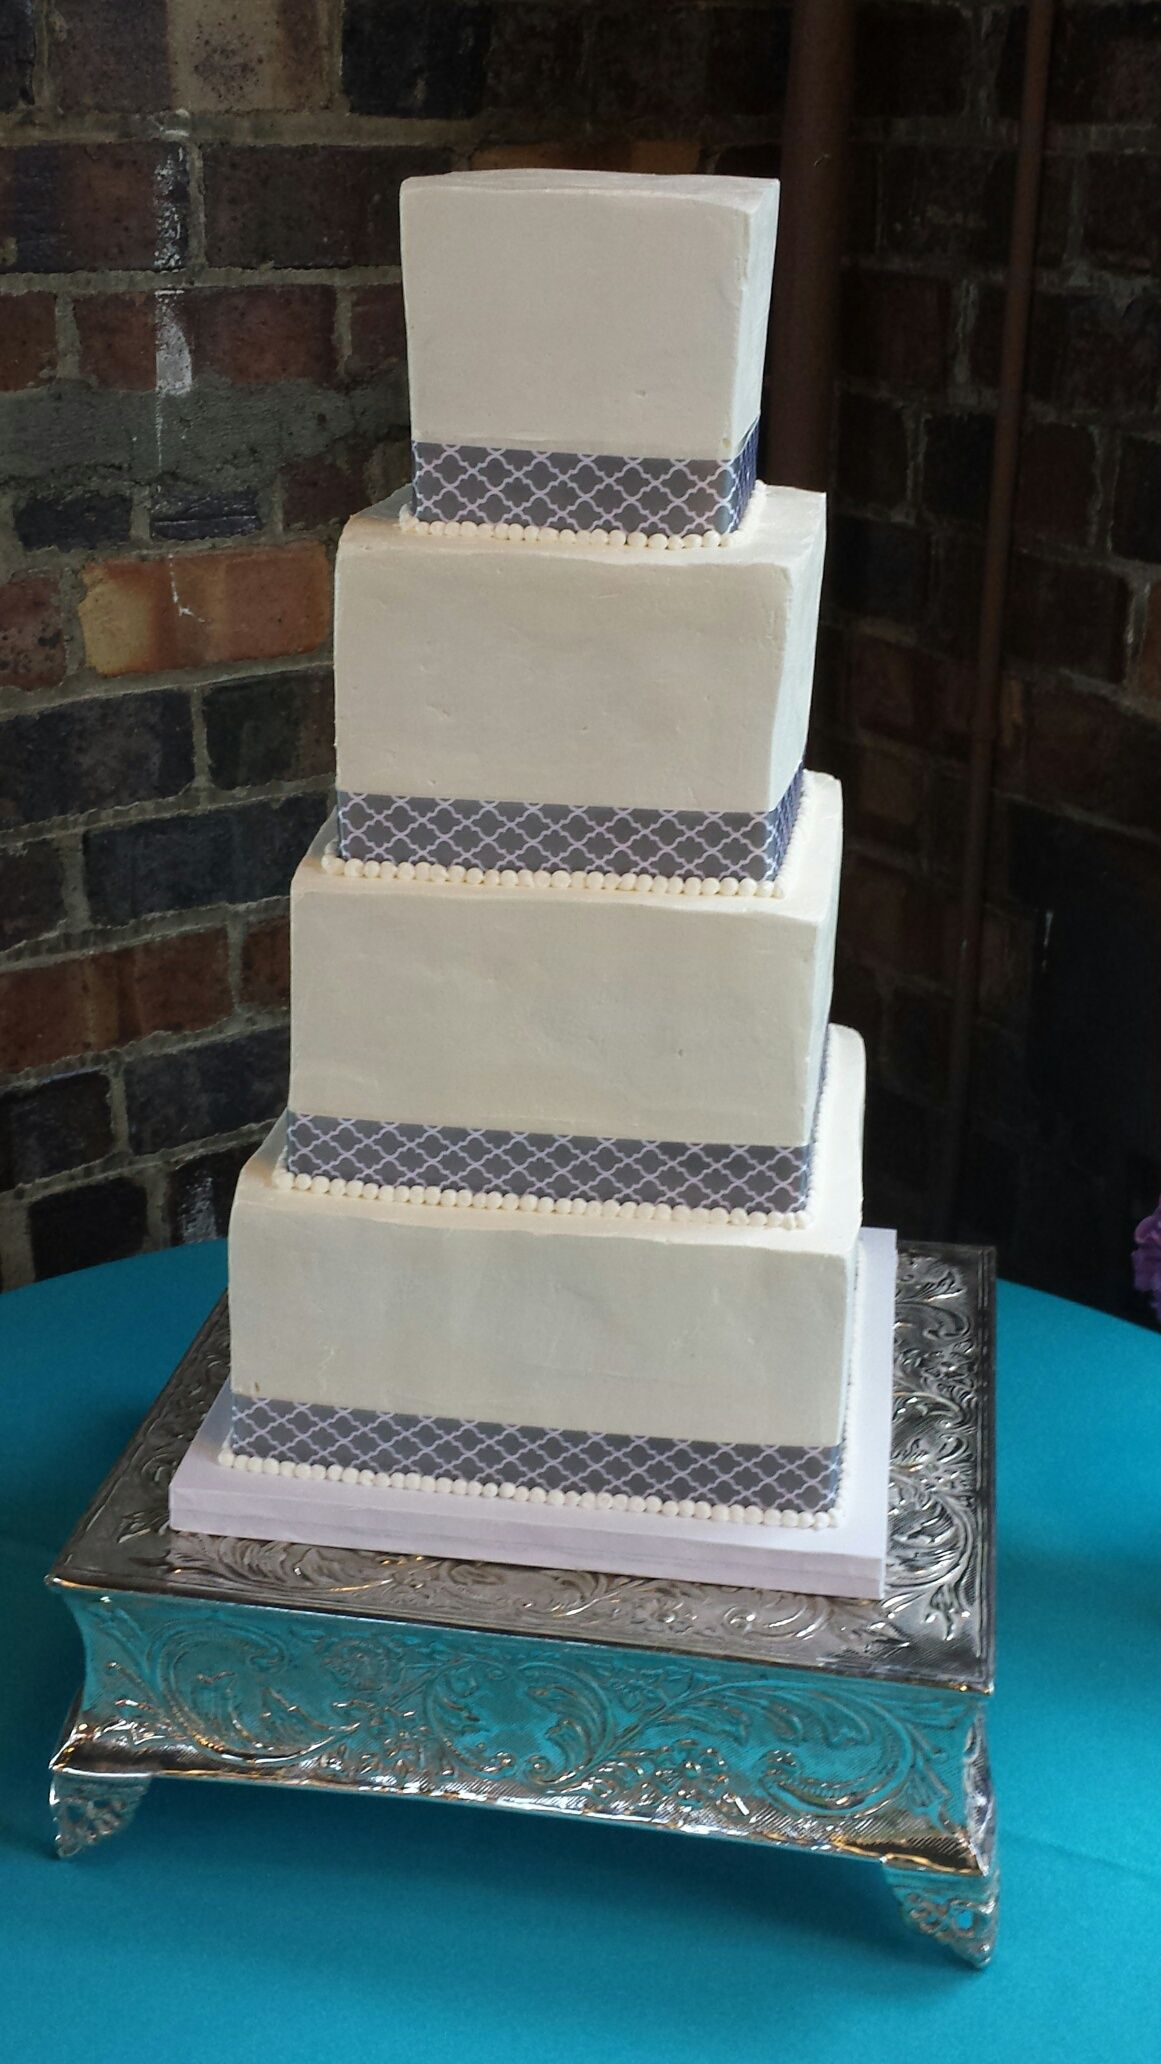 Charmant Modern Square Wedding Cake By Short North Piece Of Cake In Columbus Ohio.